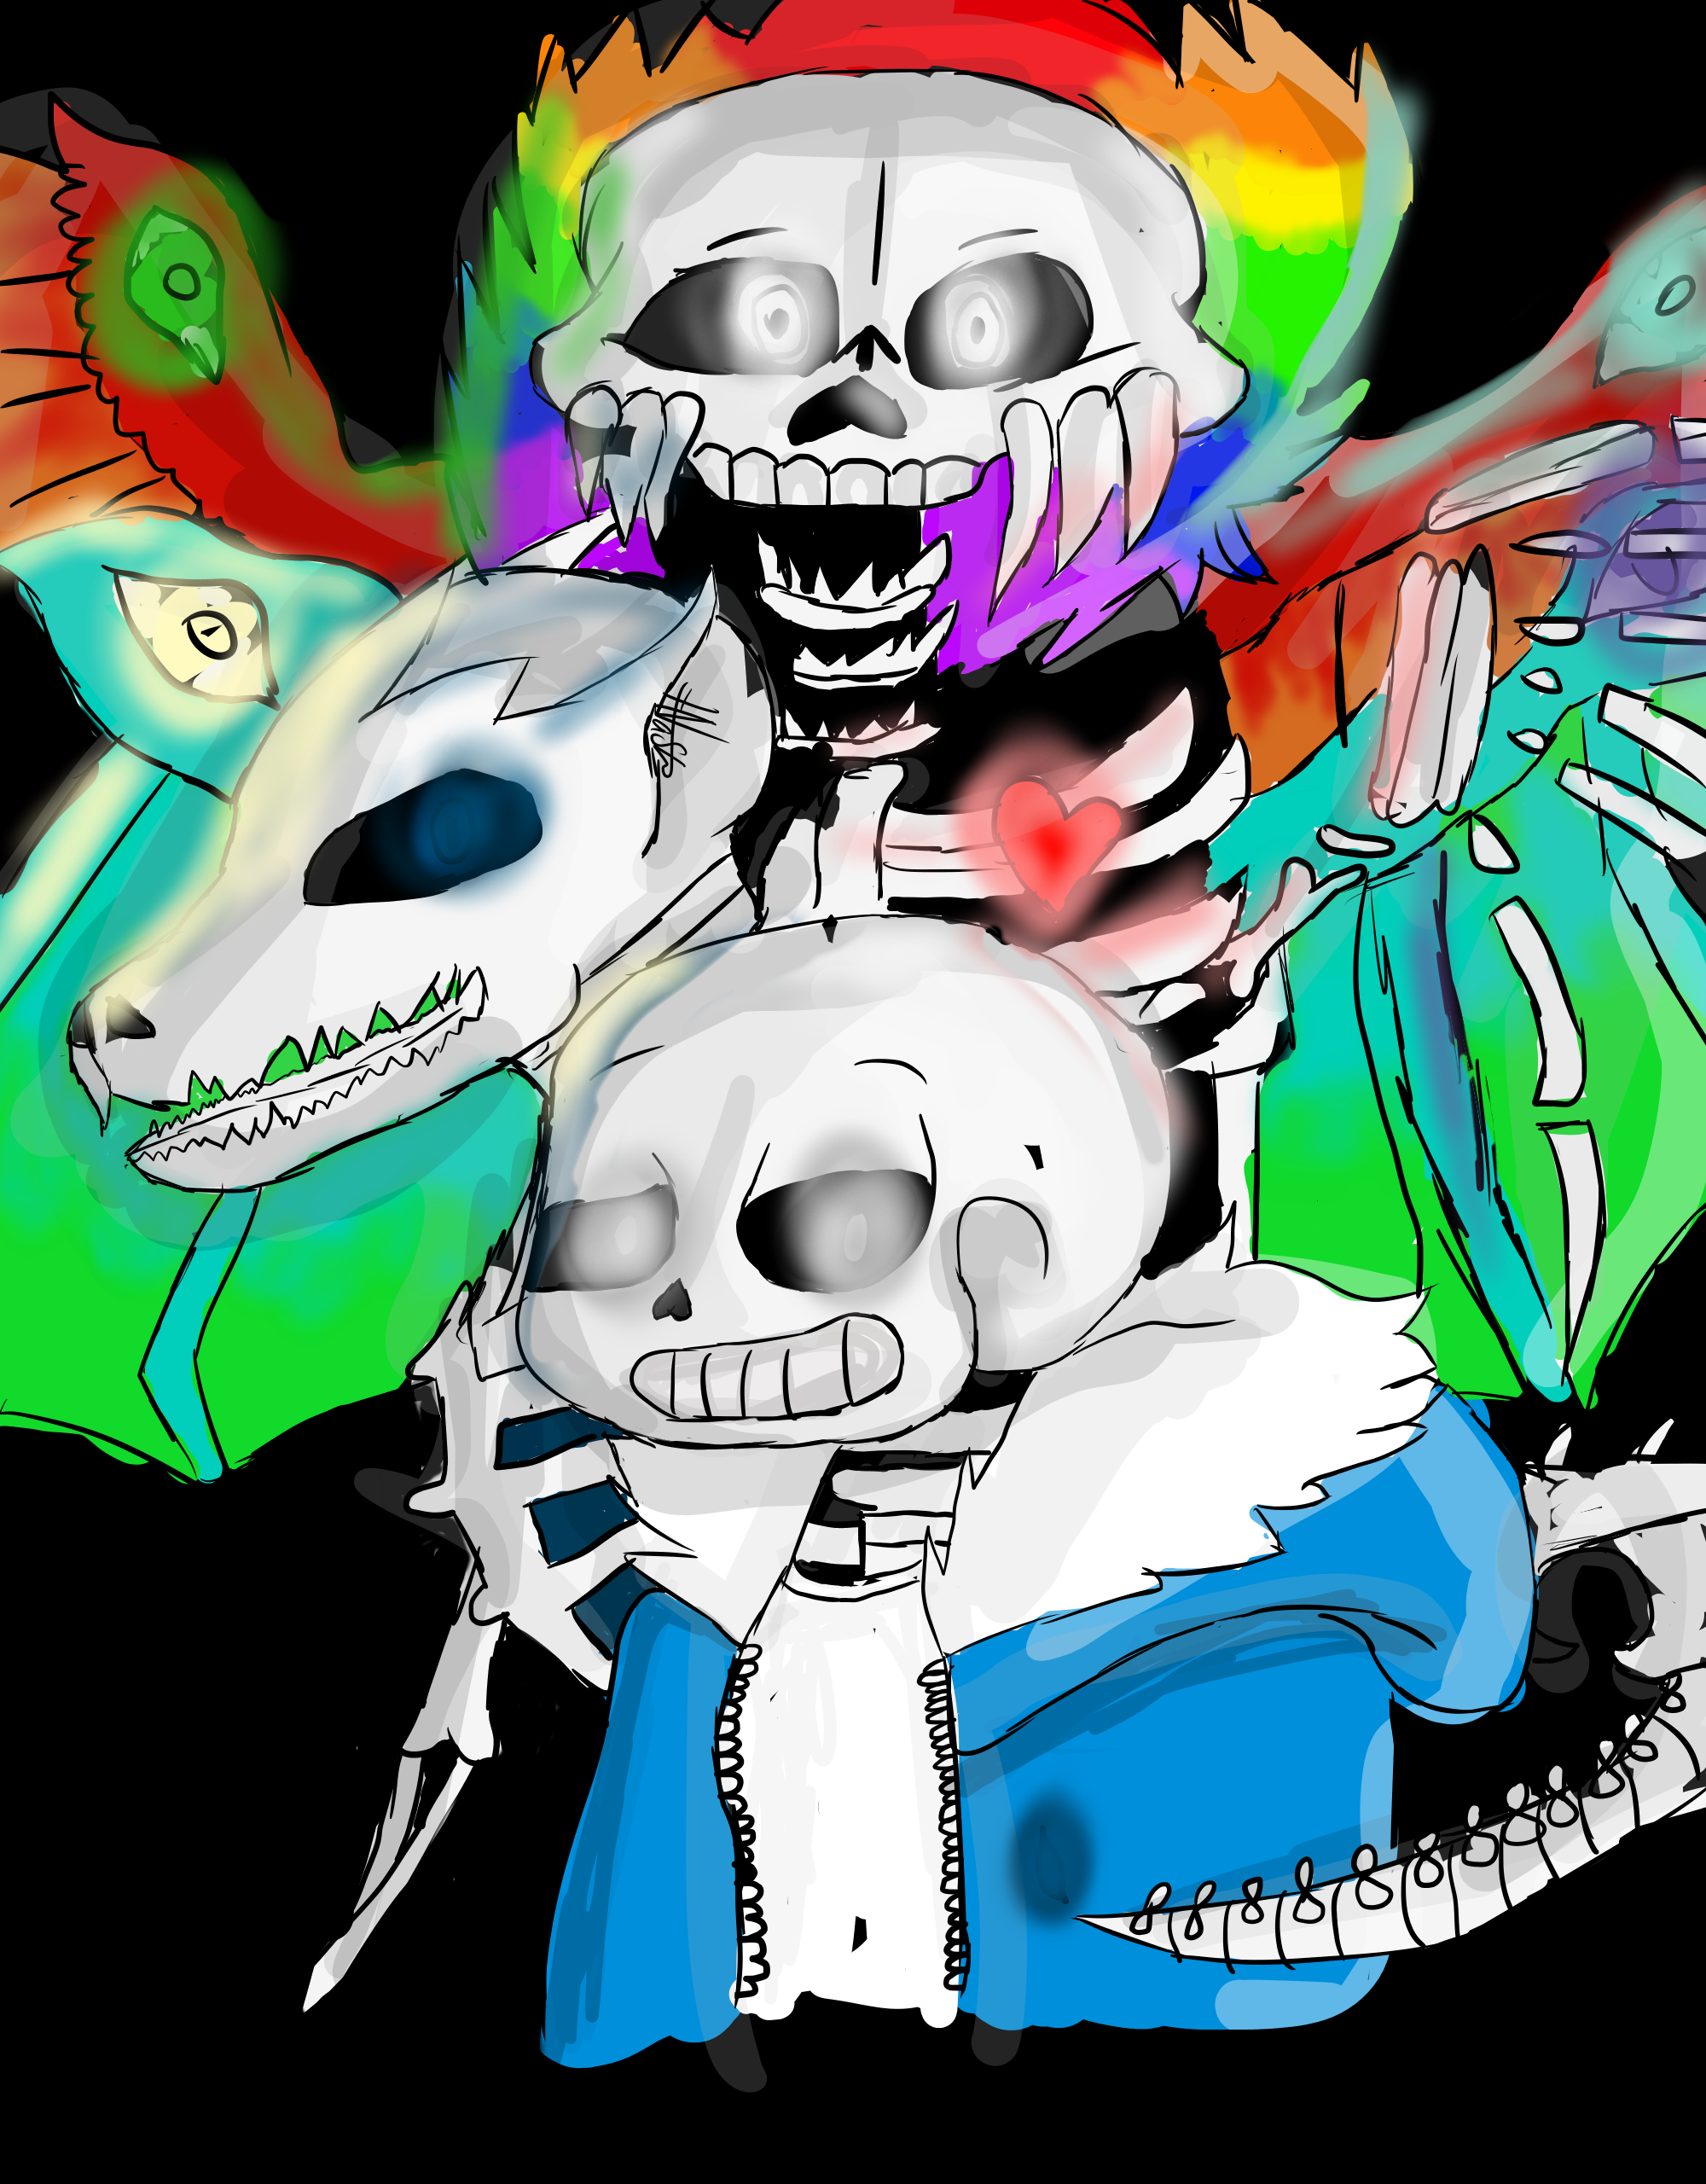 Skeletons...Dragons...Thoughts